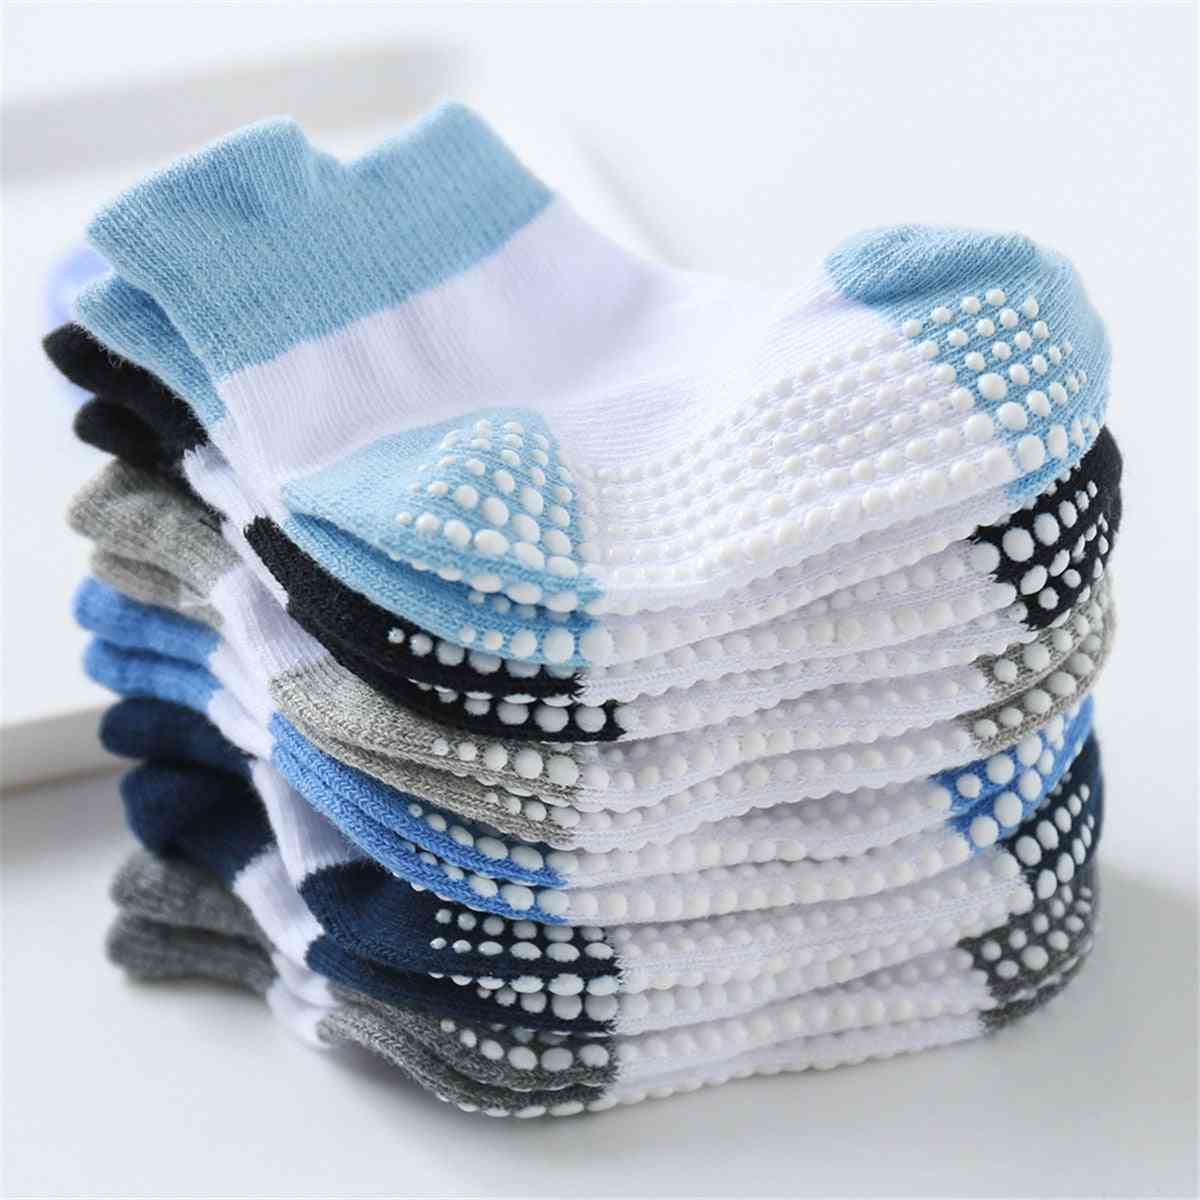 Cotton Baby 's Floor Socks- Non-slip Boat Low Cut With Rubber Grips